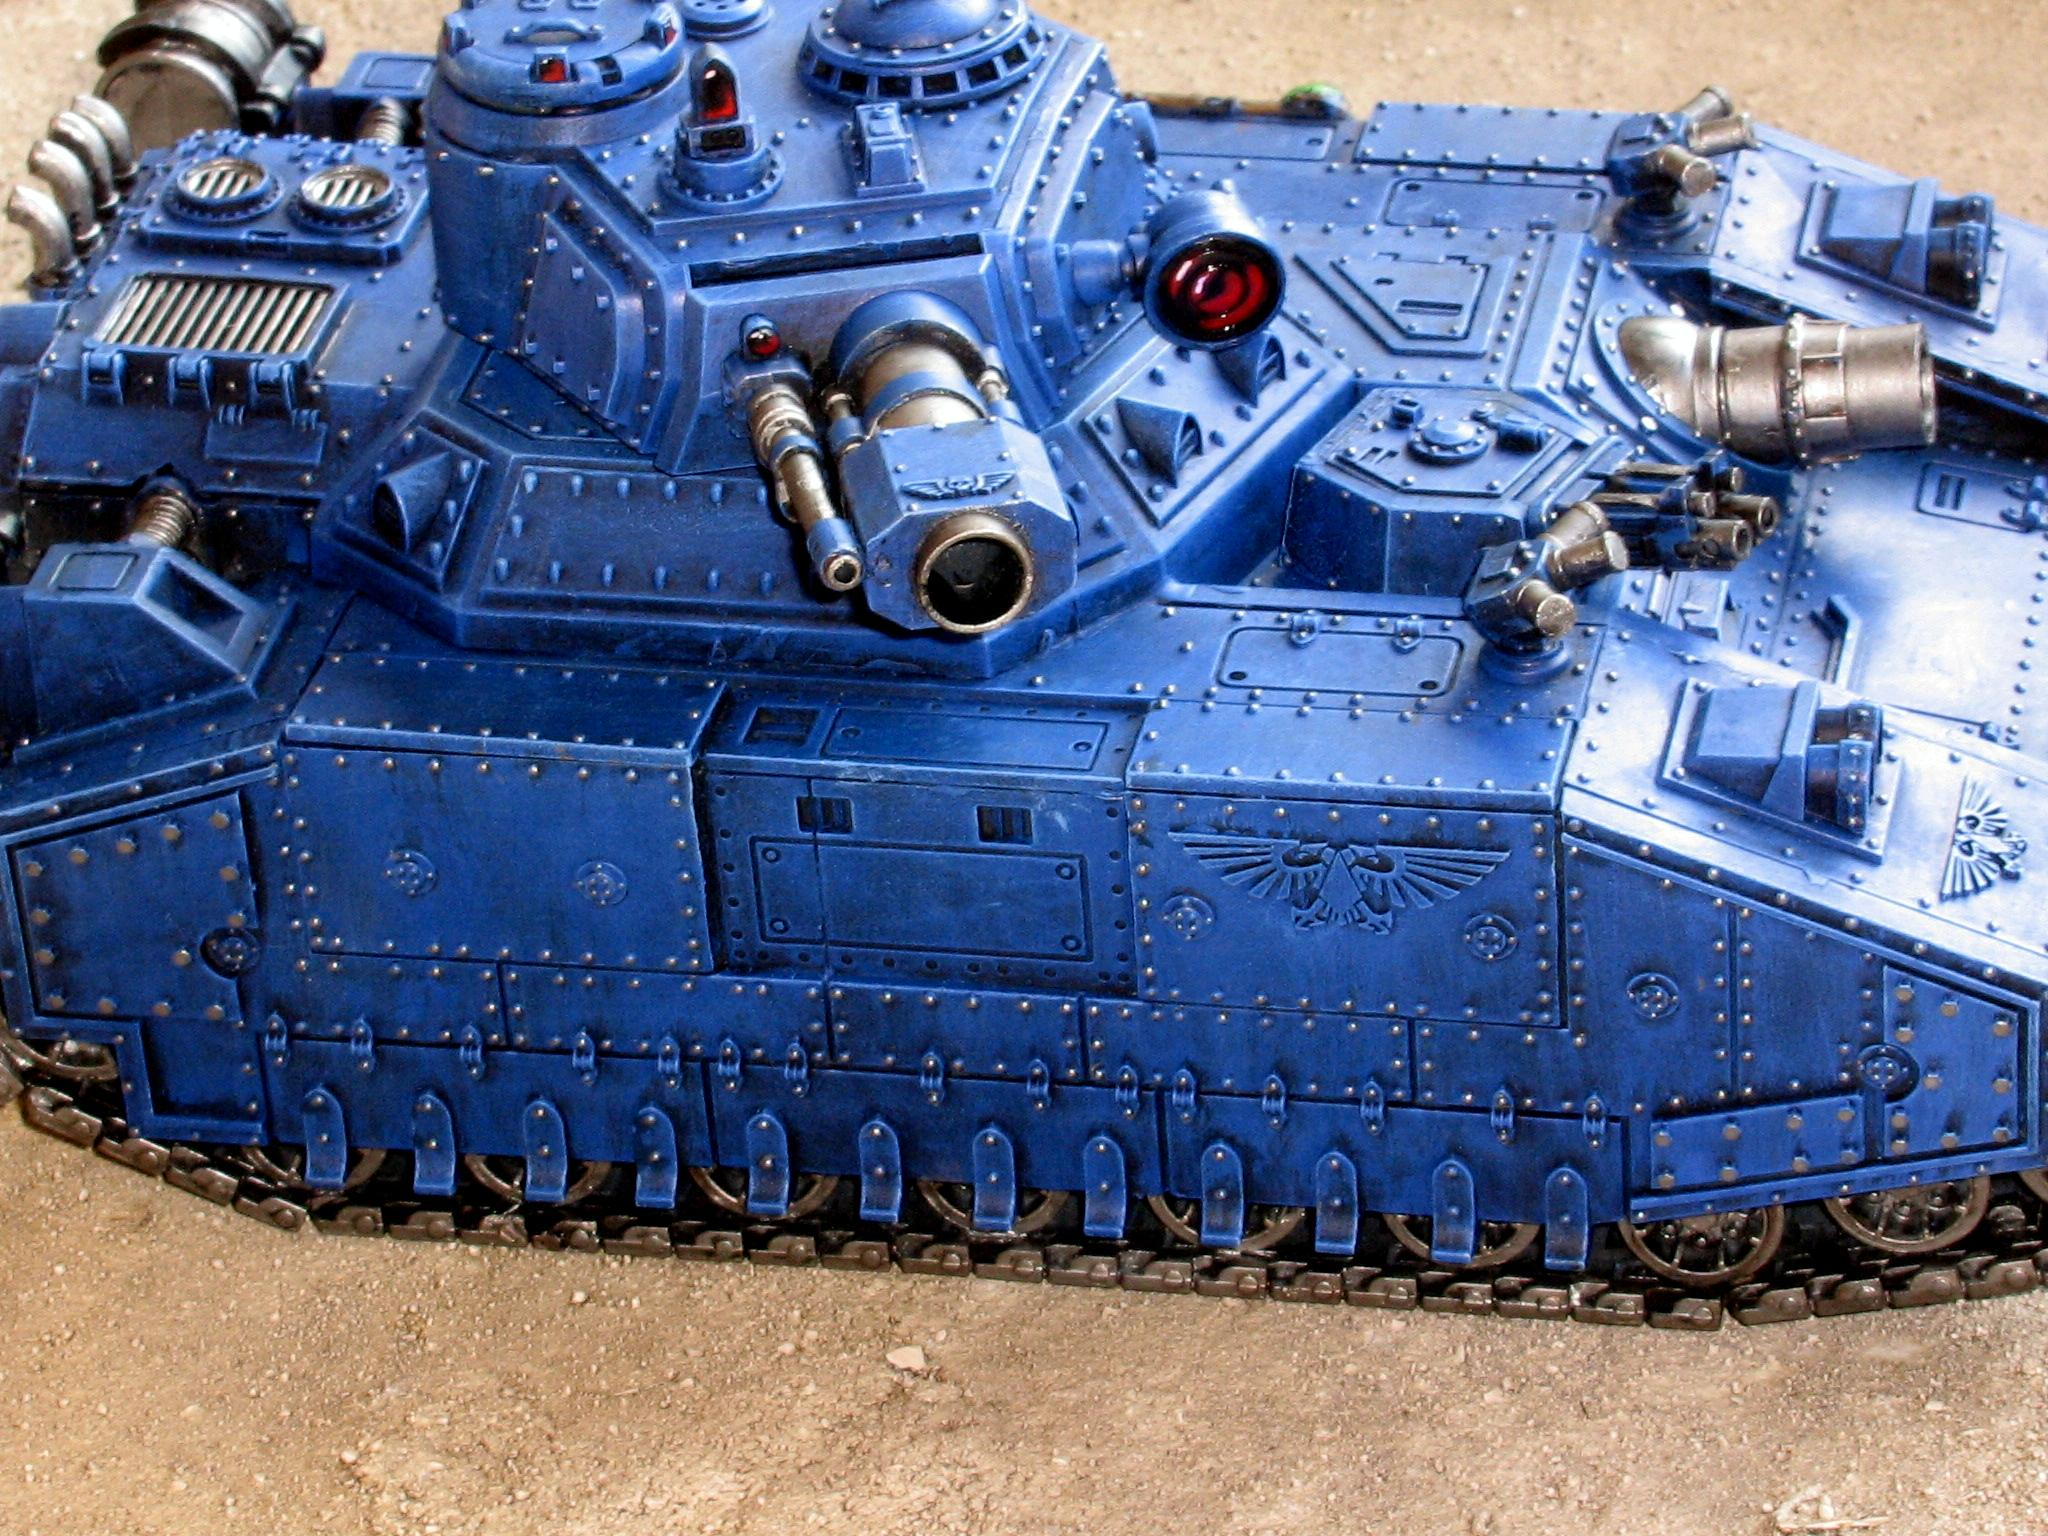 Apocalypse, Imperial Guard, Super-heavy, Warhammer 40,000